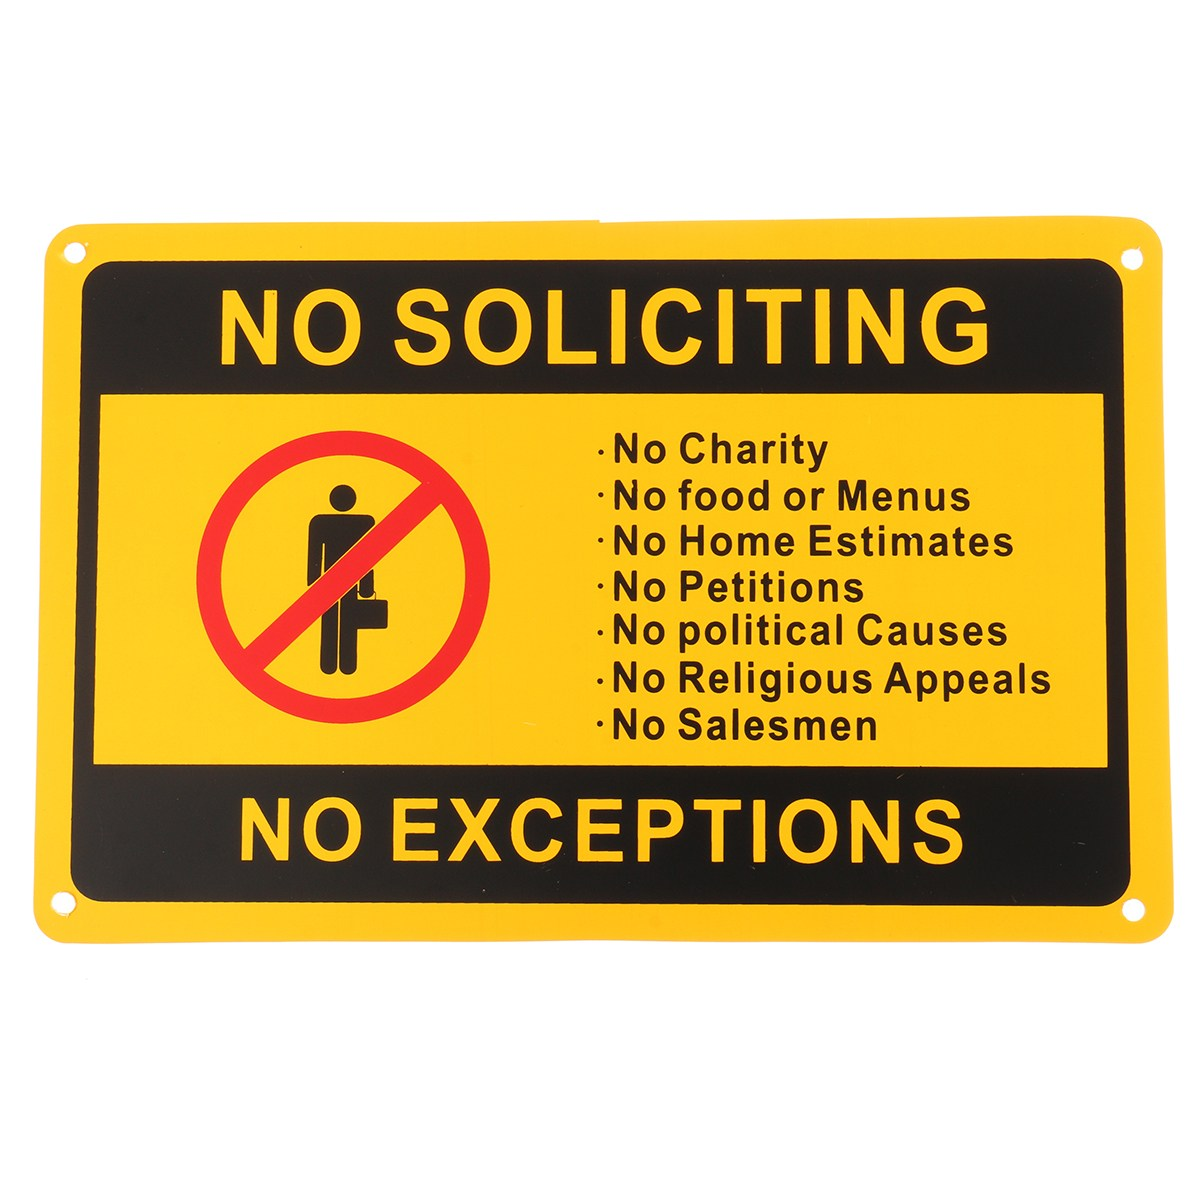 NEW Safurance NO SOLICITING NO EXCEPTIONS Front Door Security Sign Waterproof 11x7/28x18cm Workplace Safety